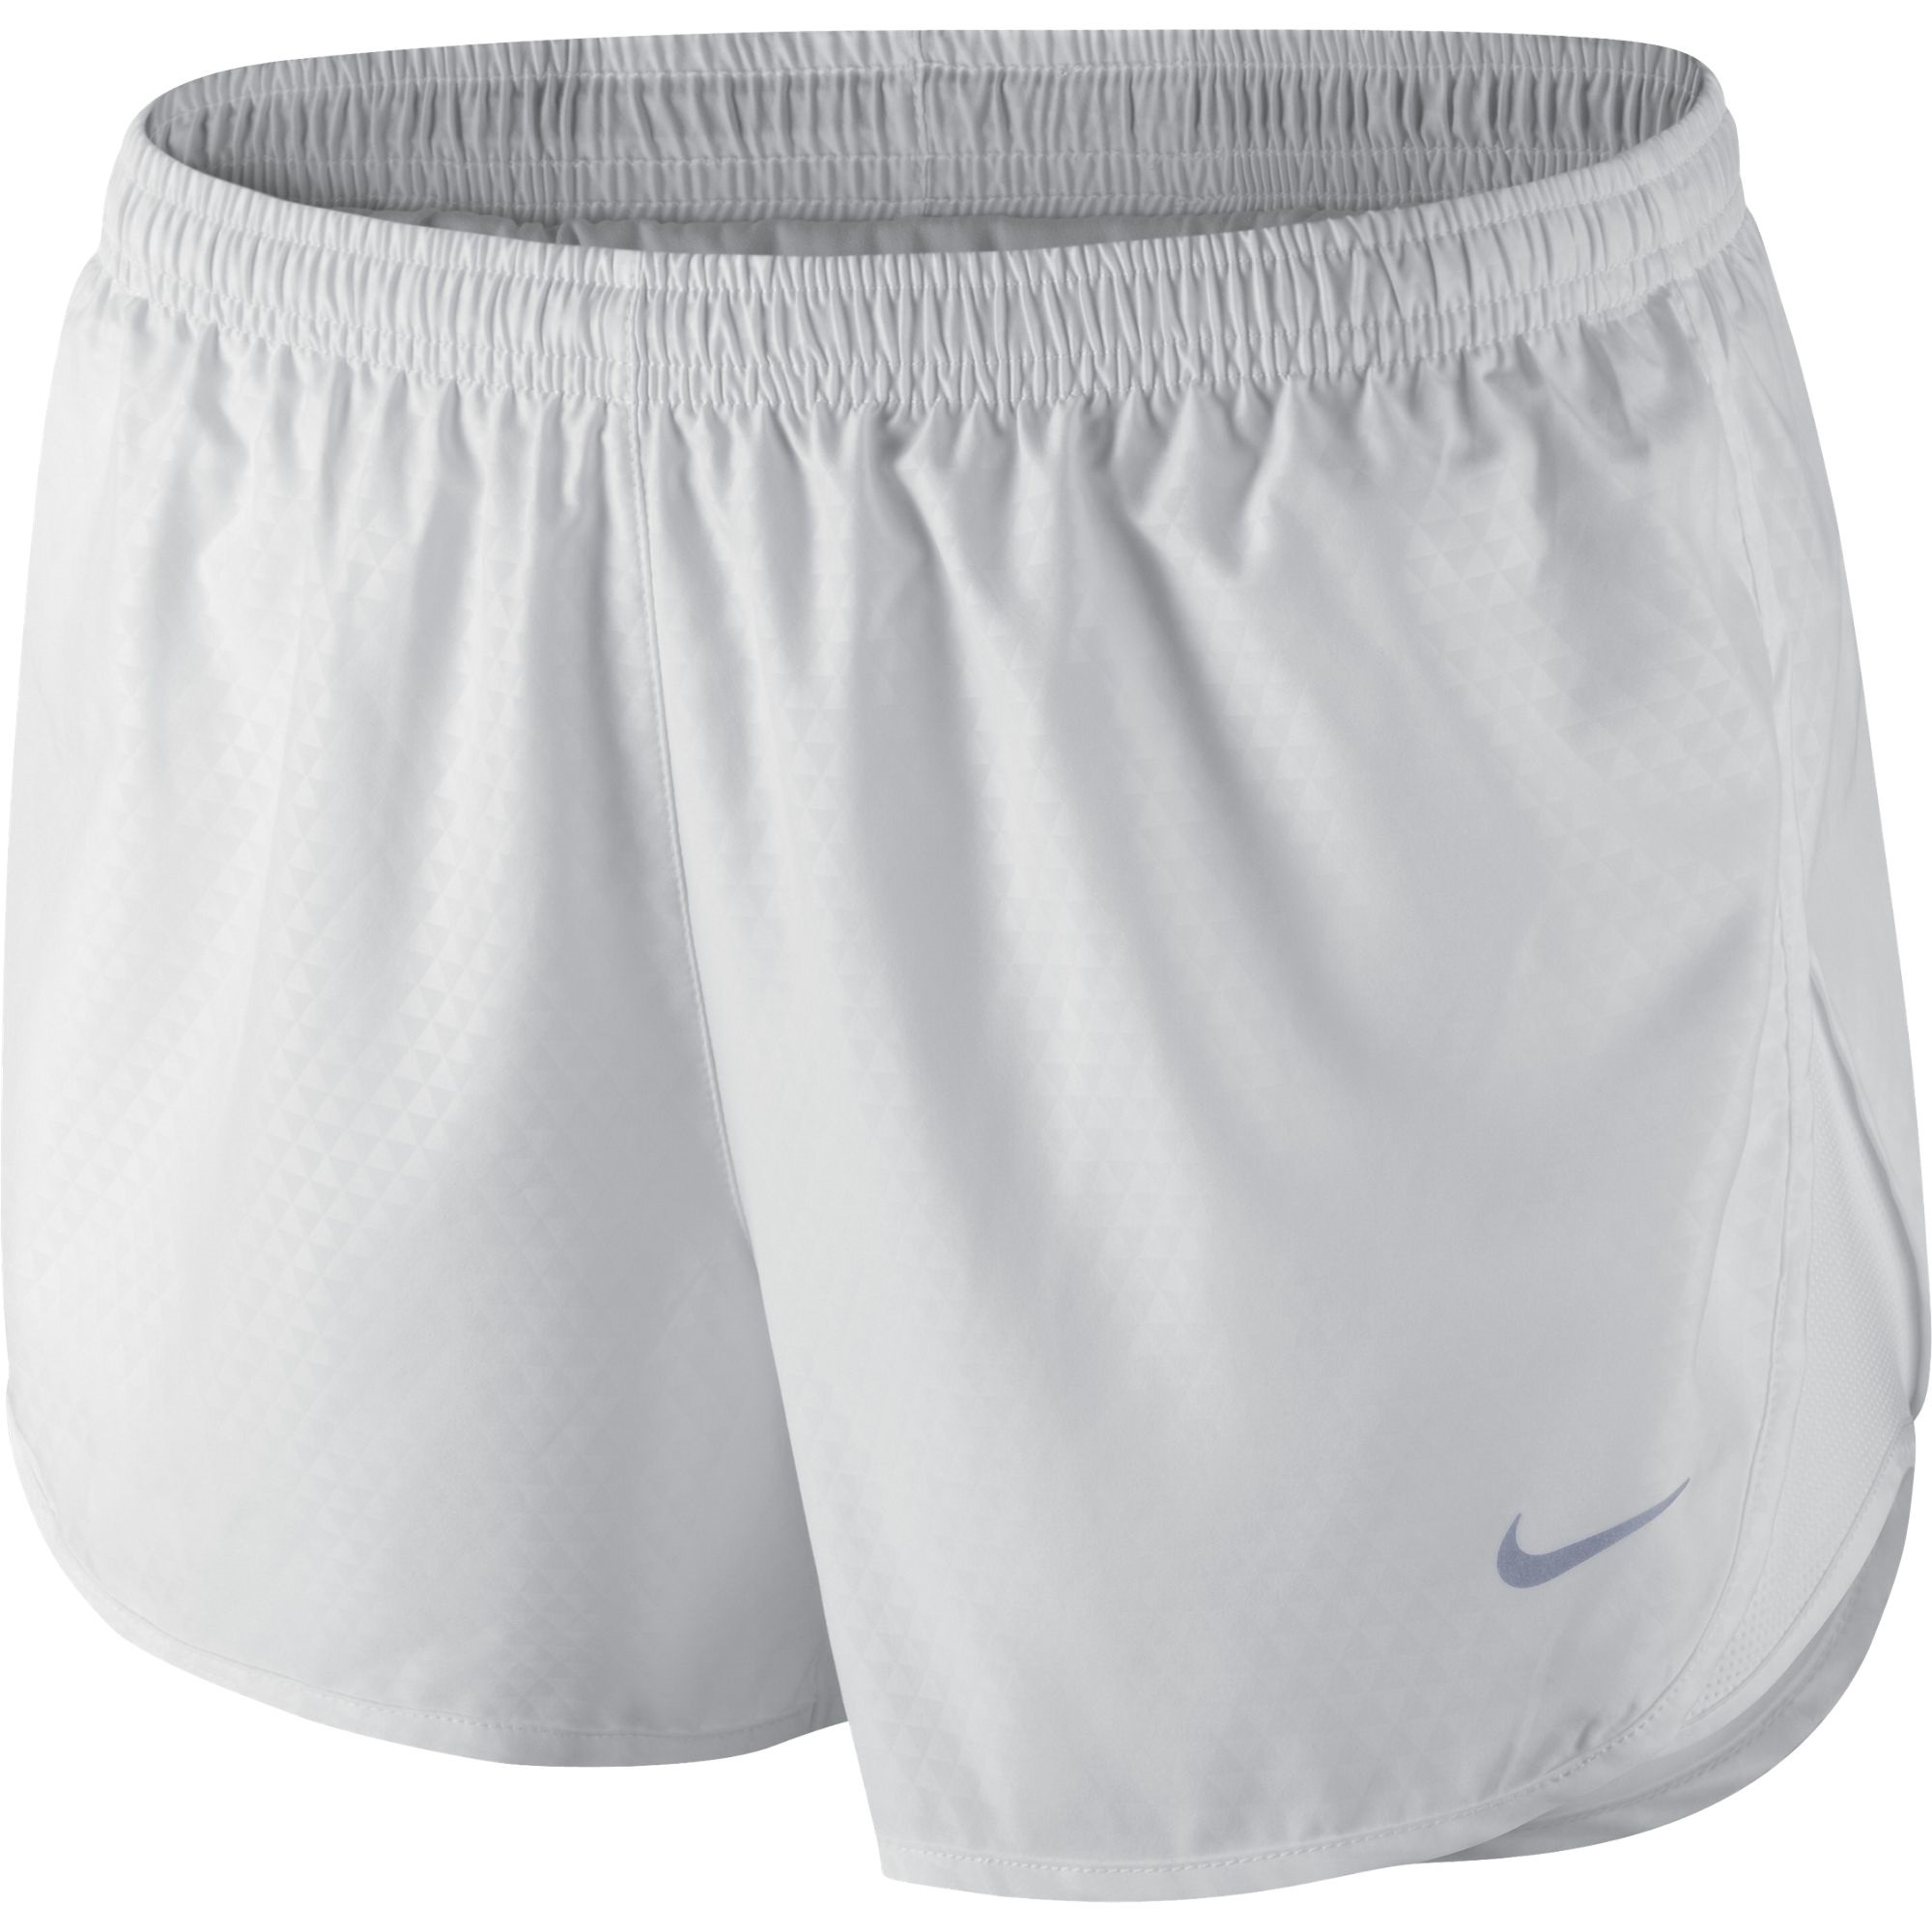 8f89ce7e32b2 NIKE Short MODERN TEMPO EMBOSSED White Women